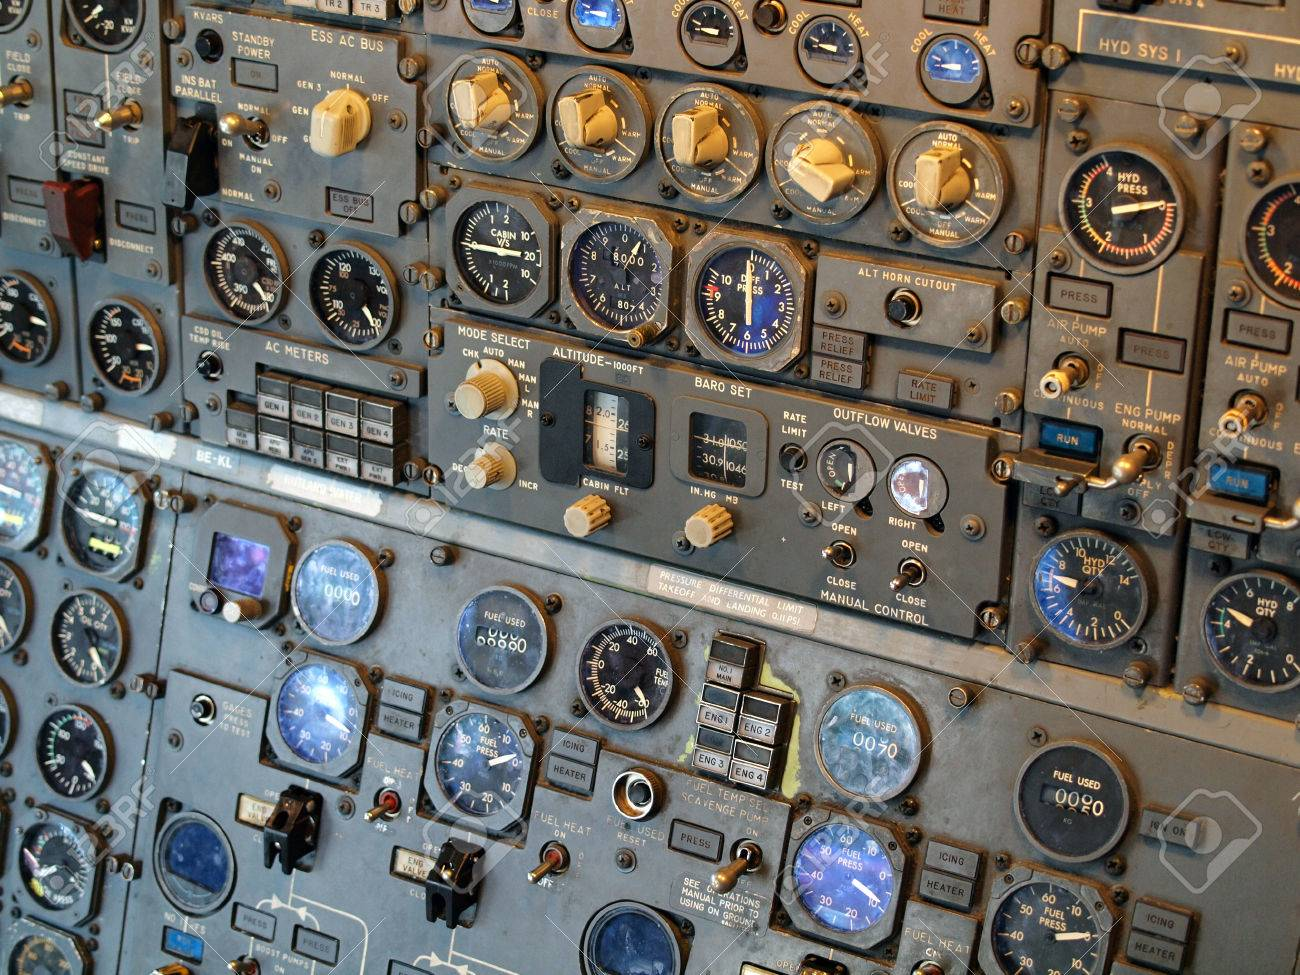 Jet aircraft cockpit Equipment with various indicators, buttons,